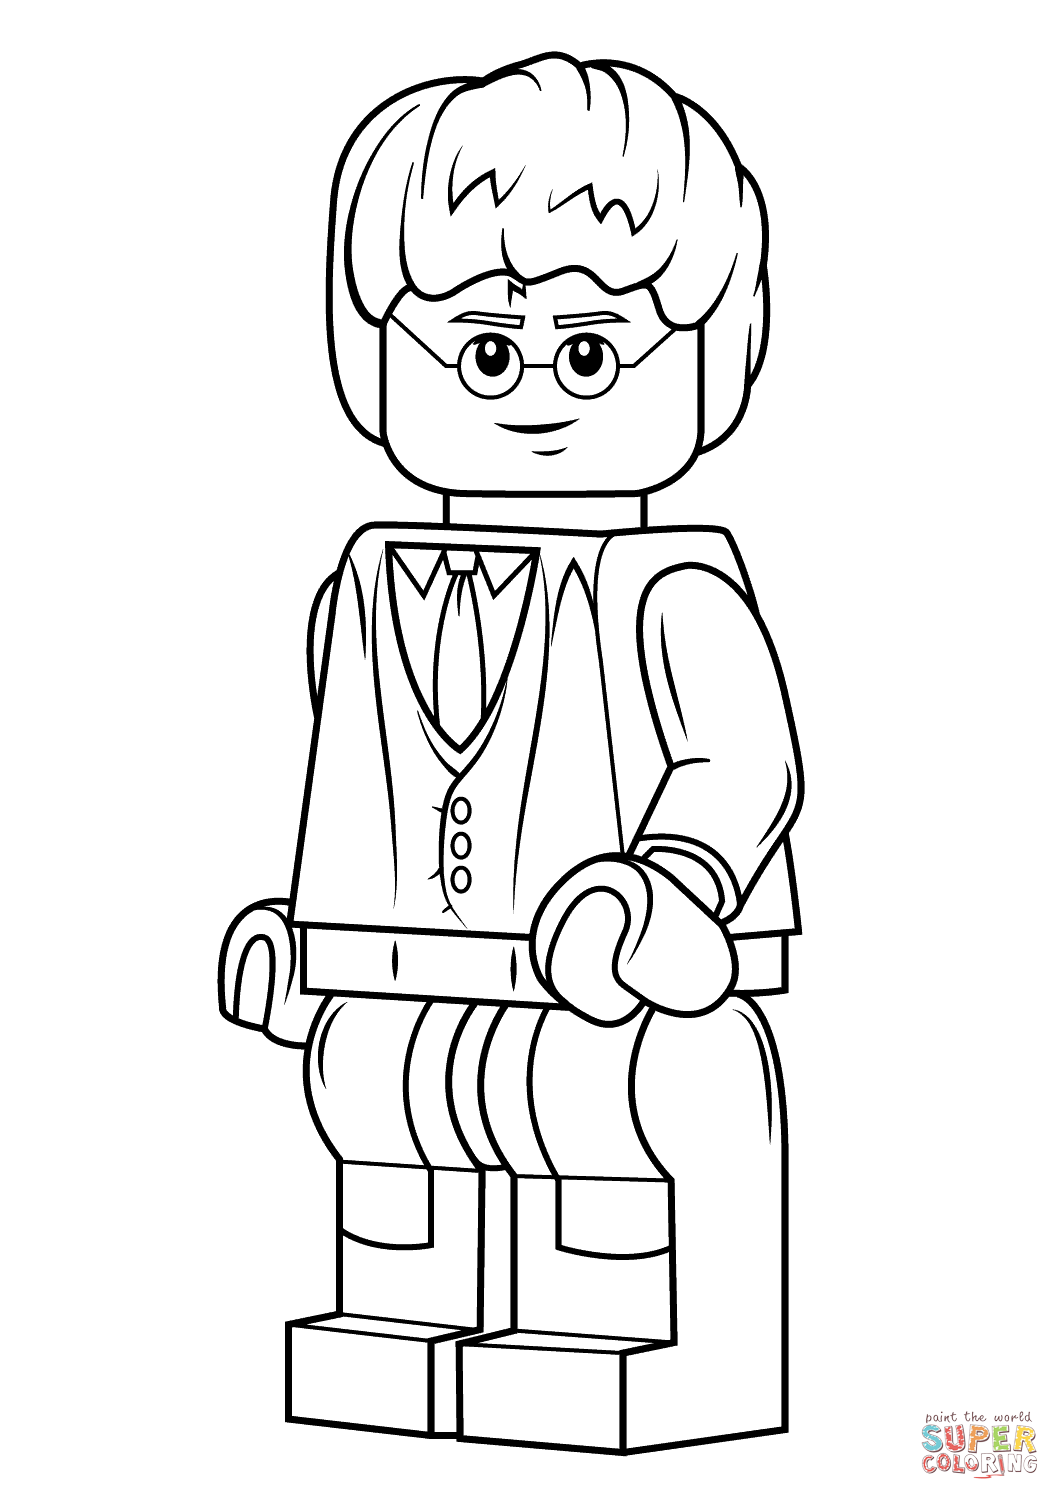 Harry potter coloring pages printable - Lego Harry Potter Coloring Page Free Printable Coloring Pages